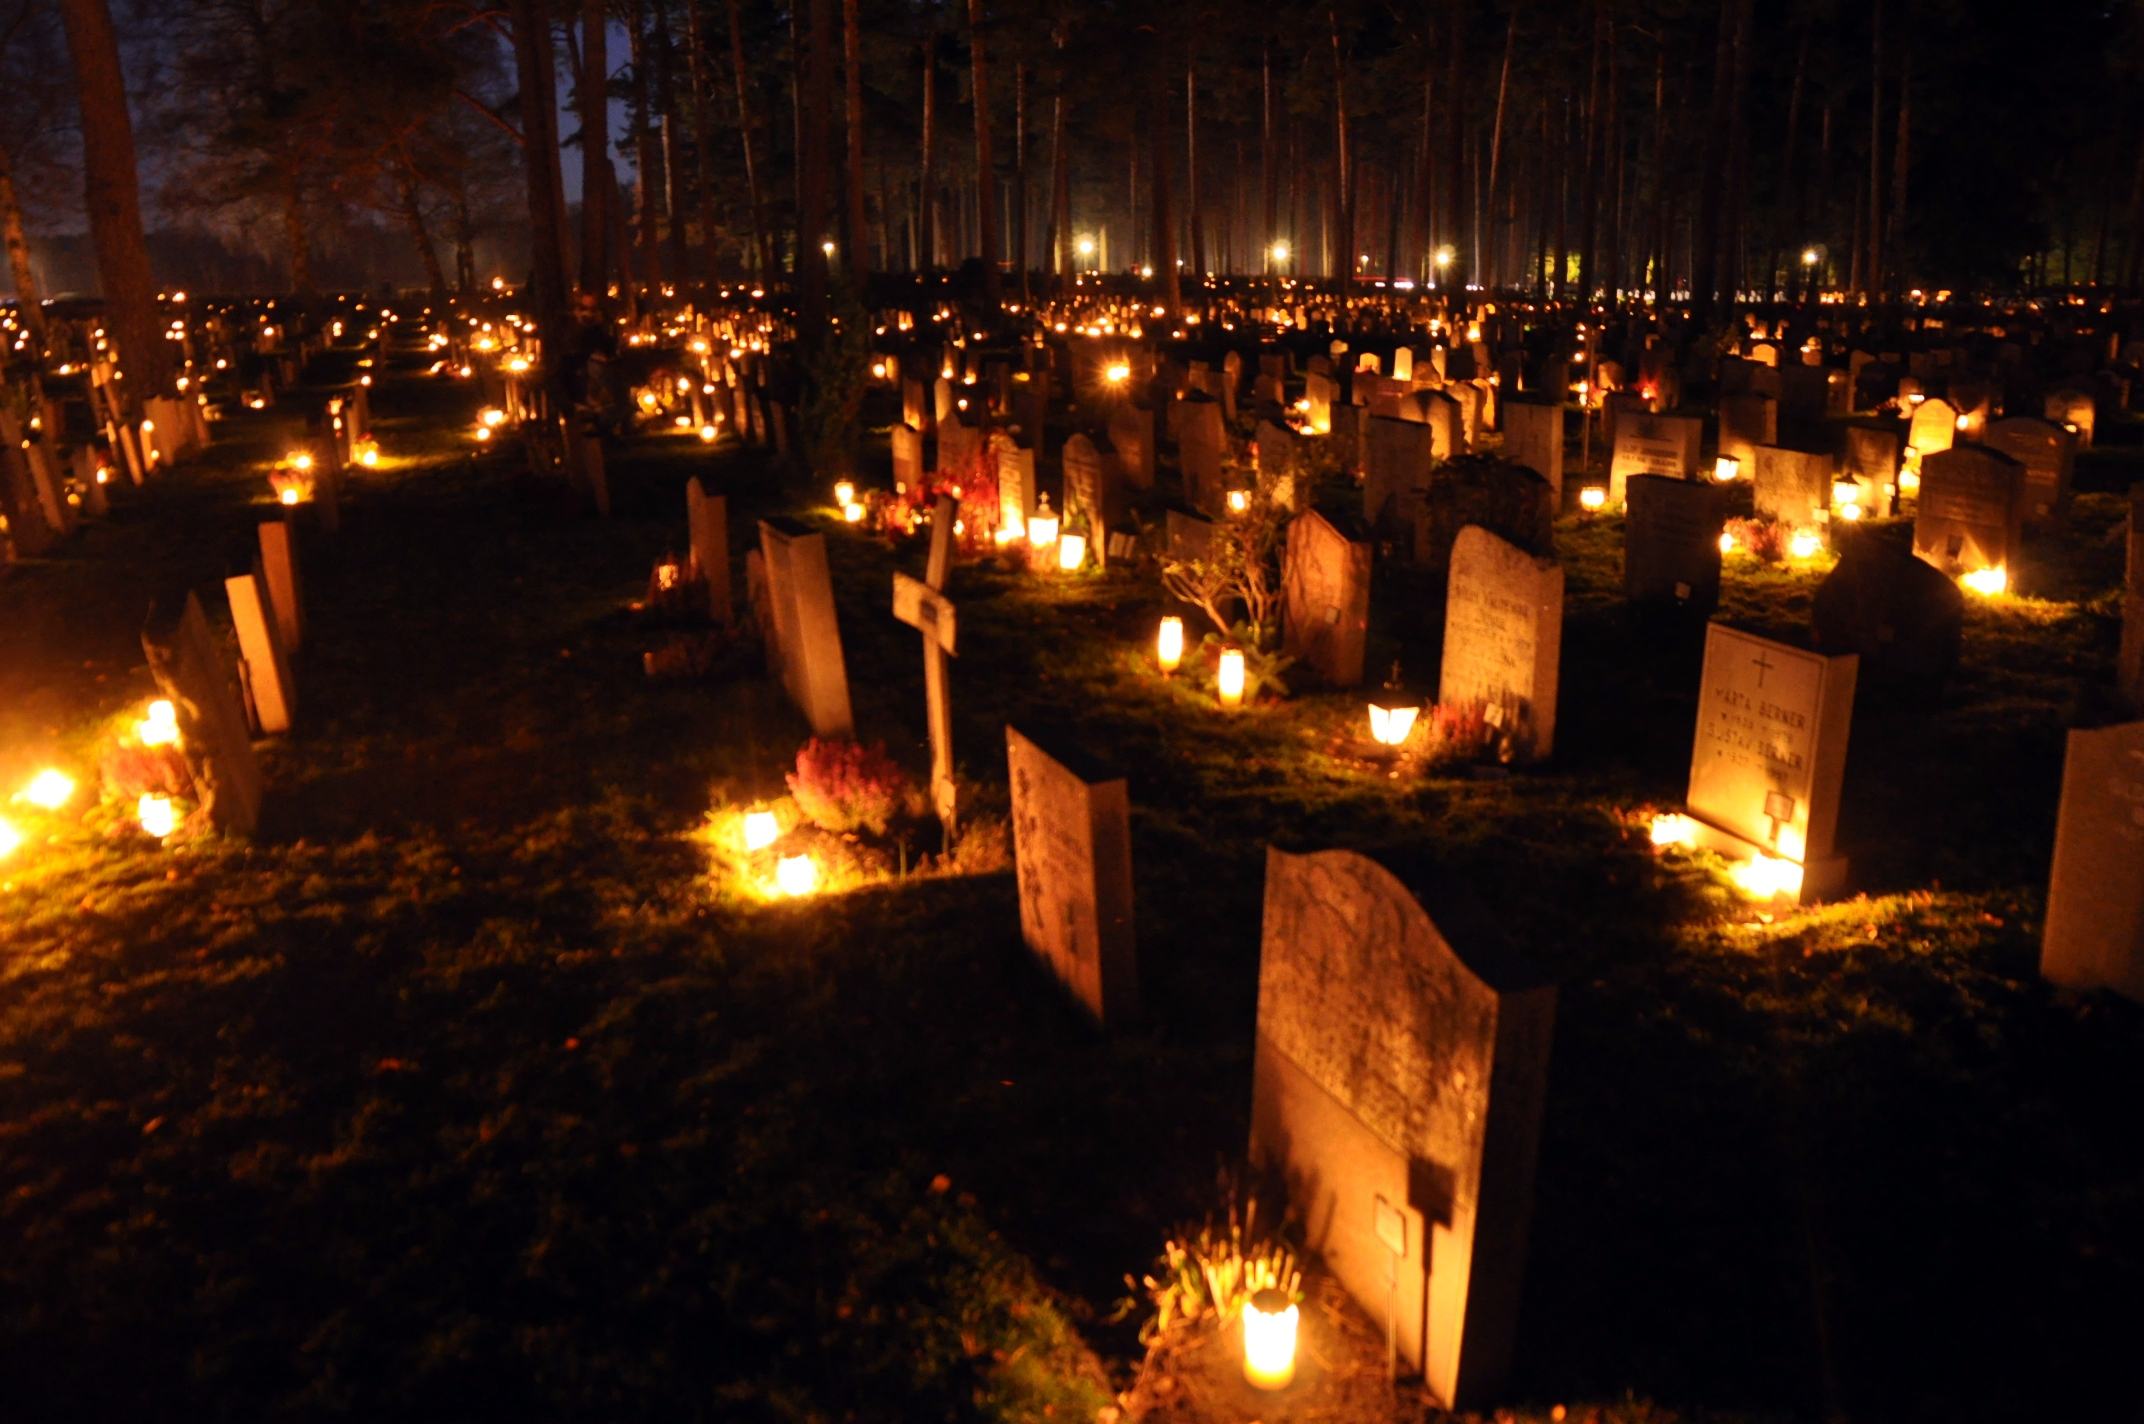 http://upload.wikimedia.org/wikipedia/commons/0/0a/Skogskyrkog%C3%A5rden_at_All_Saints_Day_2010-1.jpg